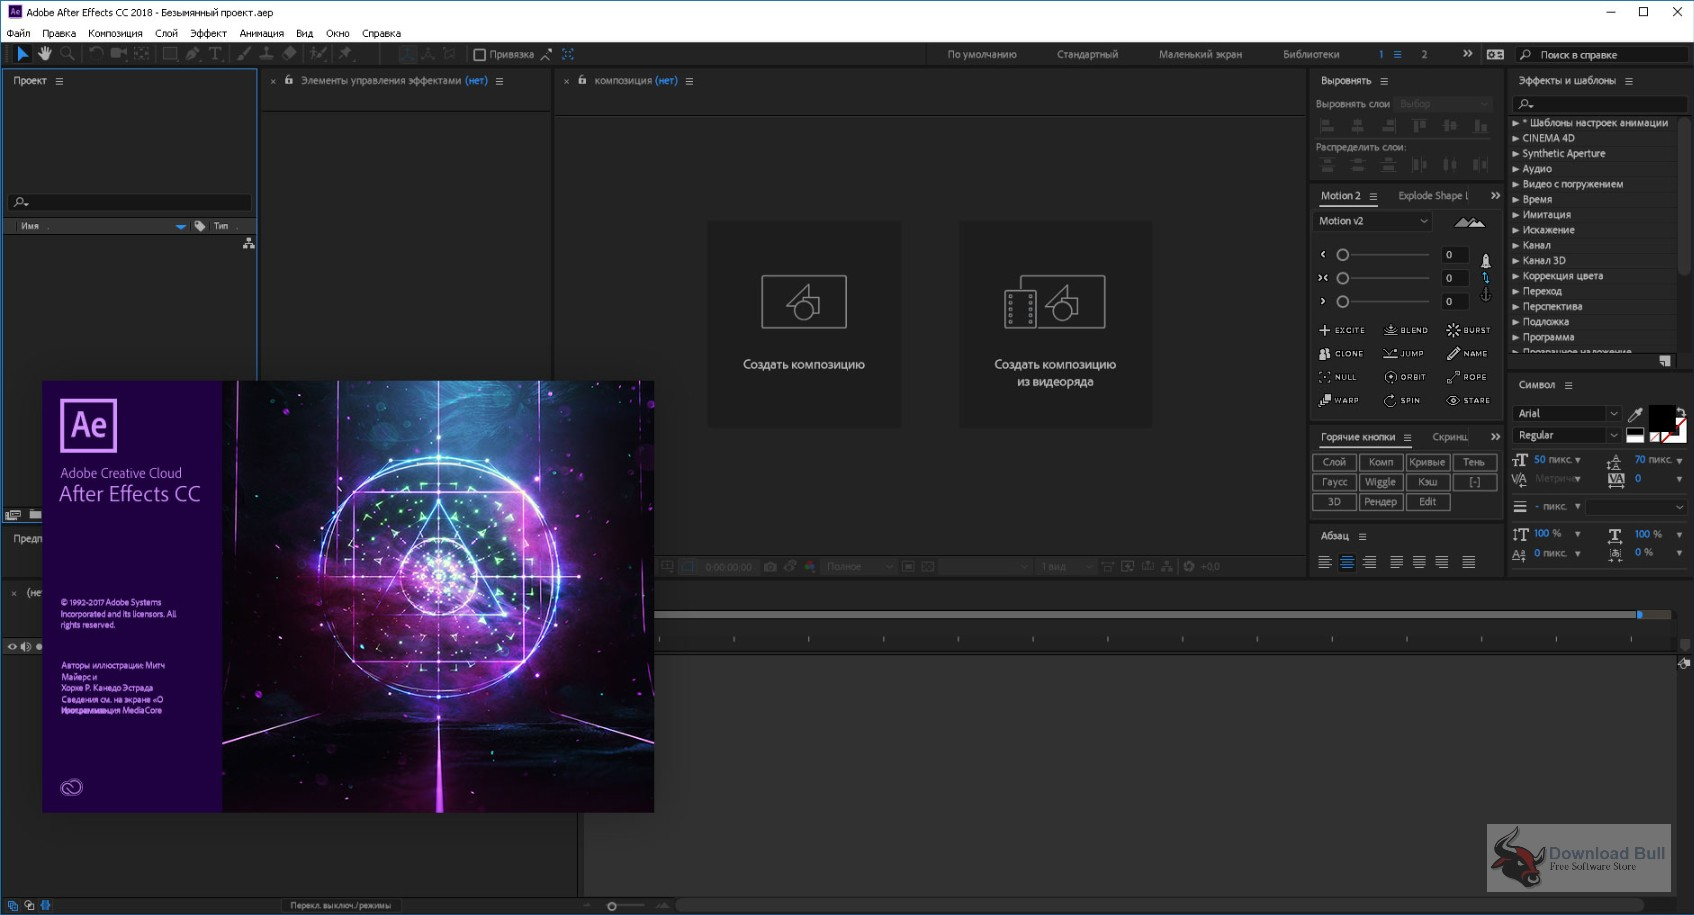 adobe after effects cc free download full version 32 bit